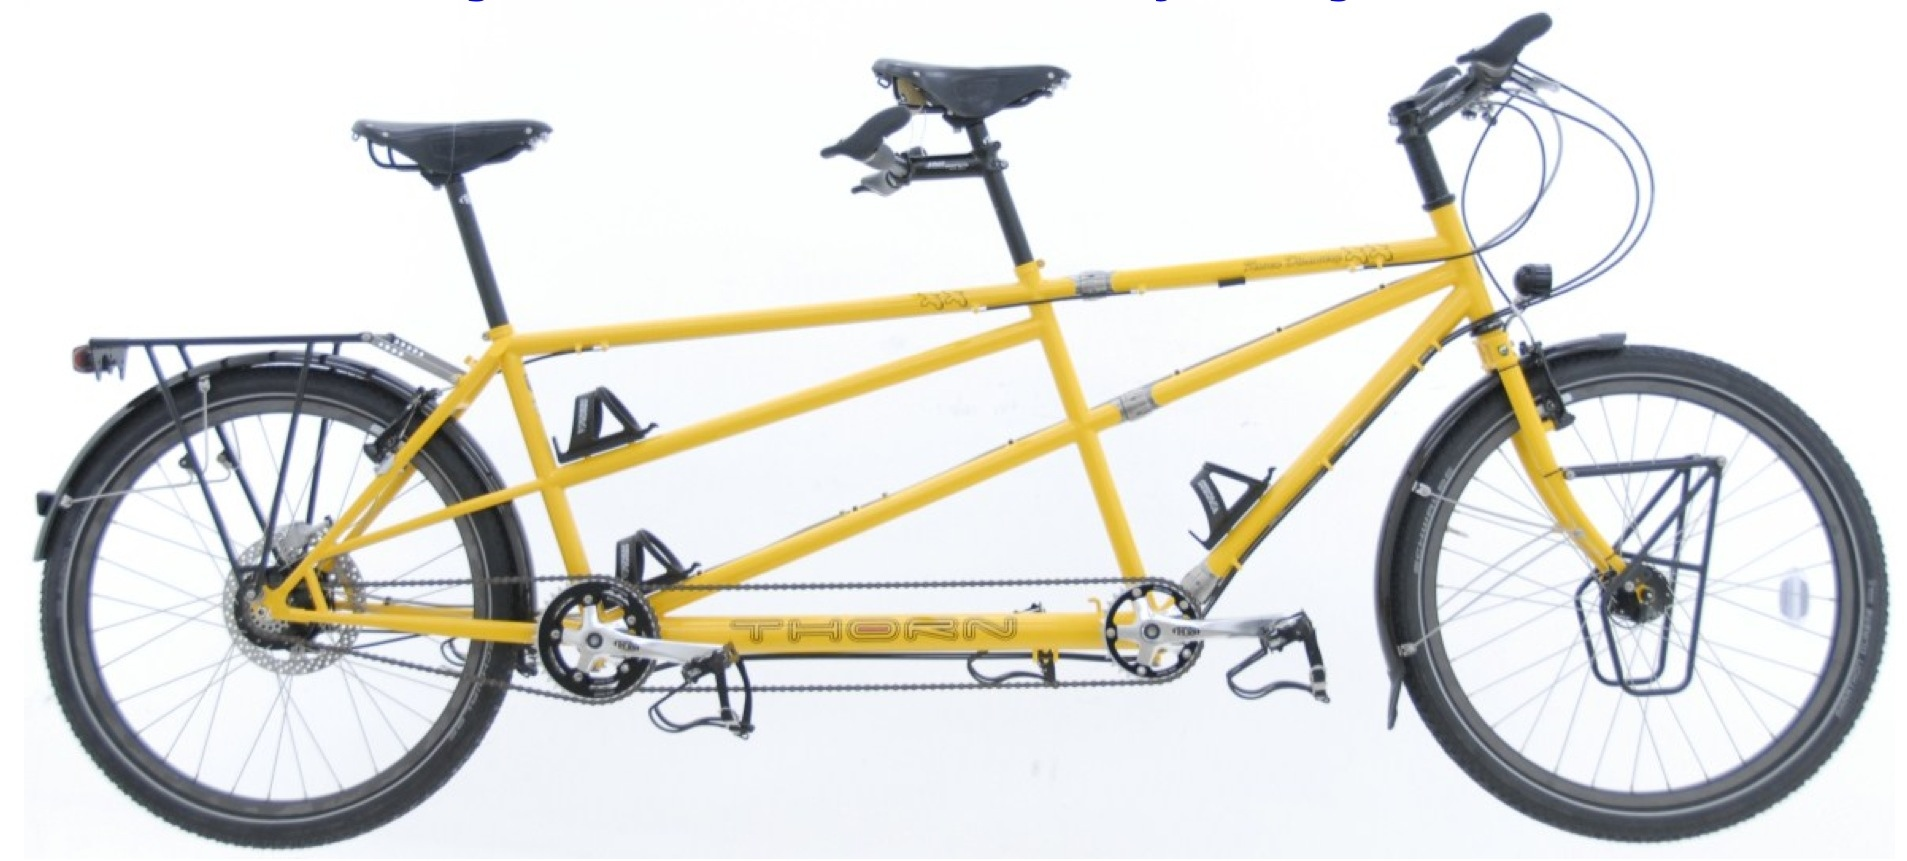 Thorn are renowned for putting together a nice touring tandem.